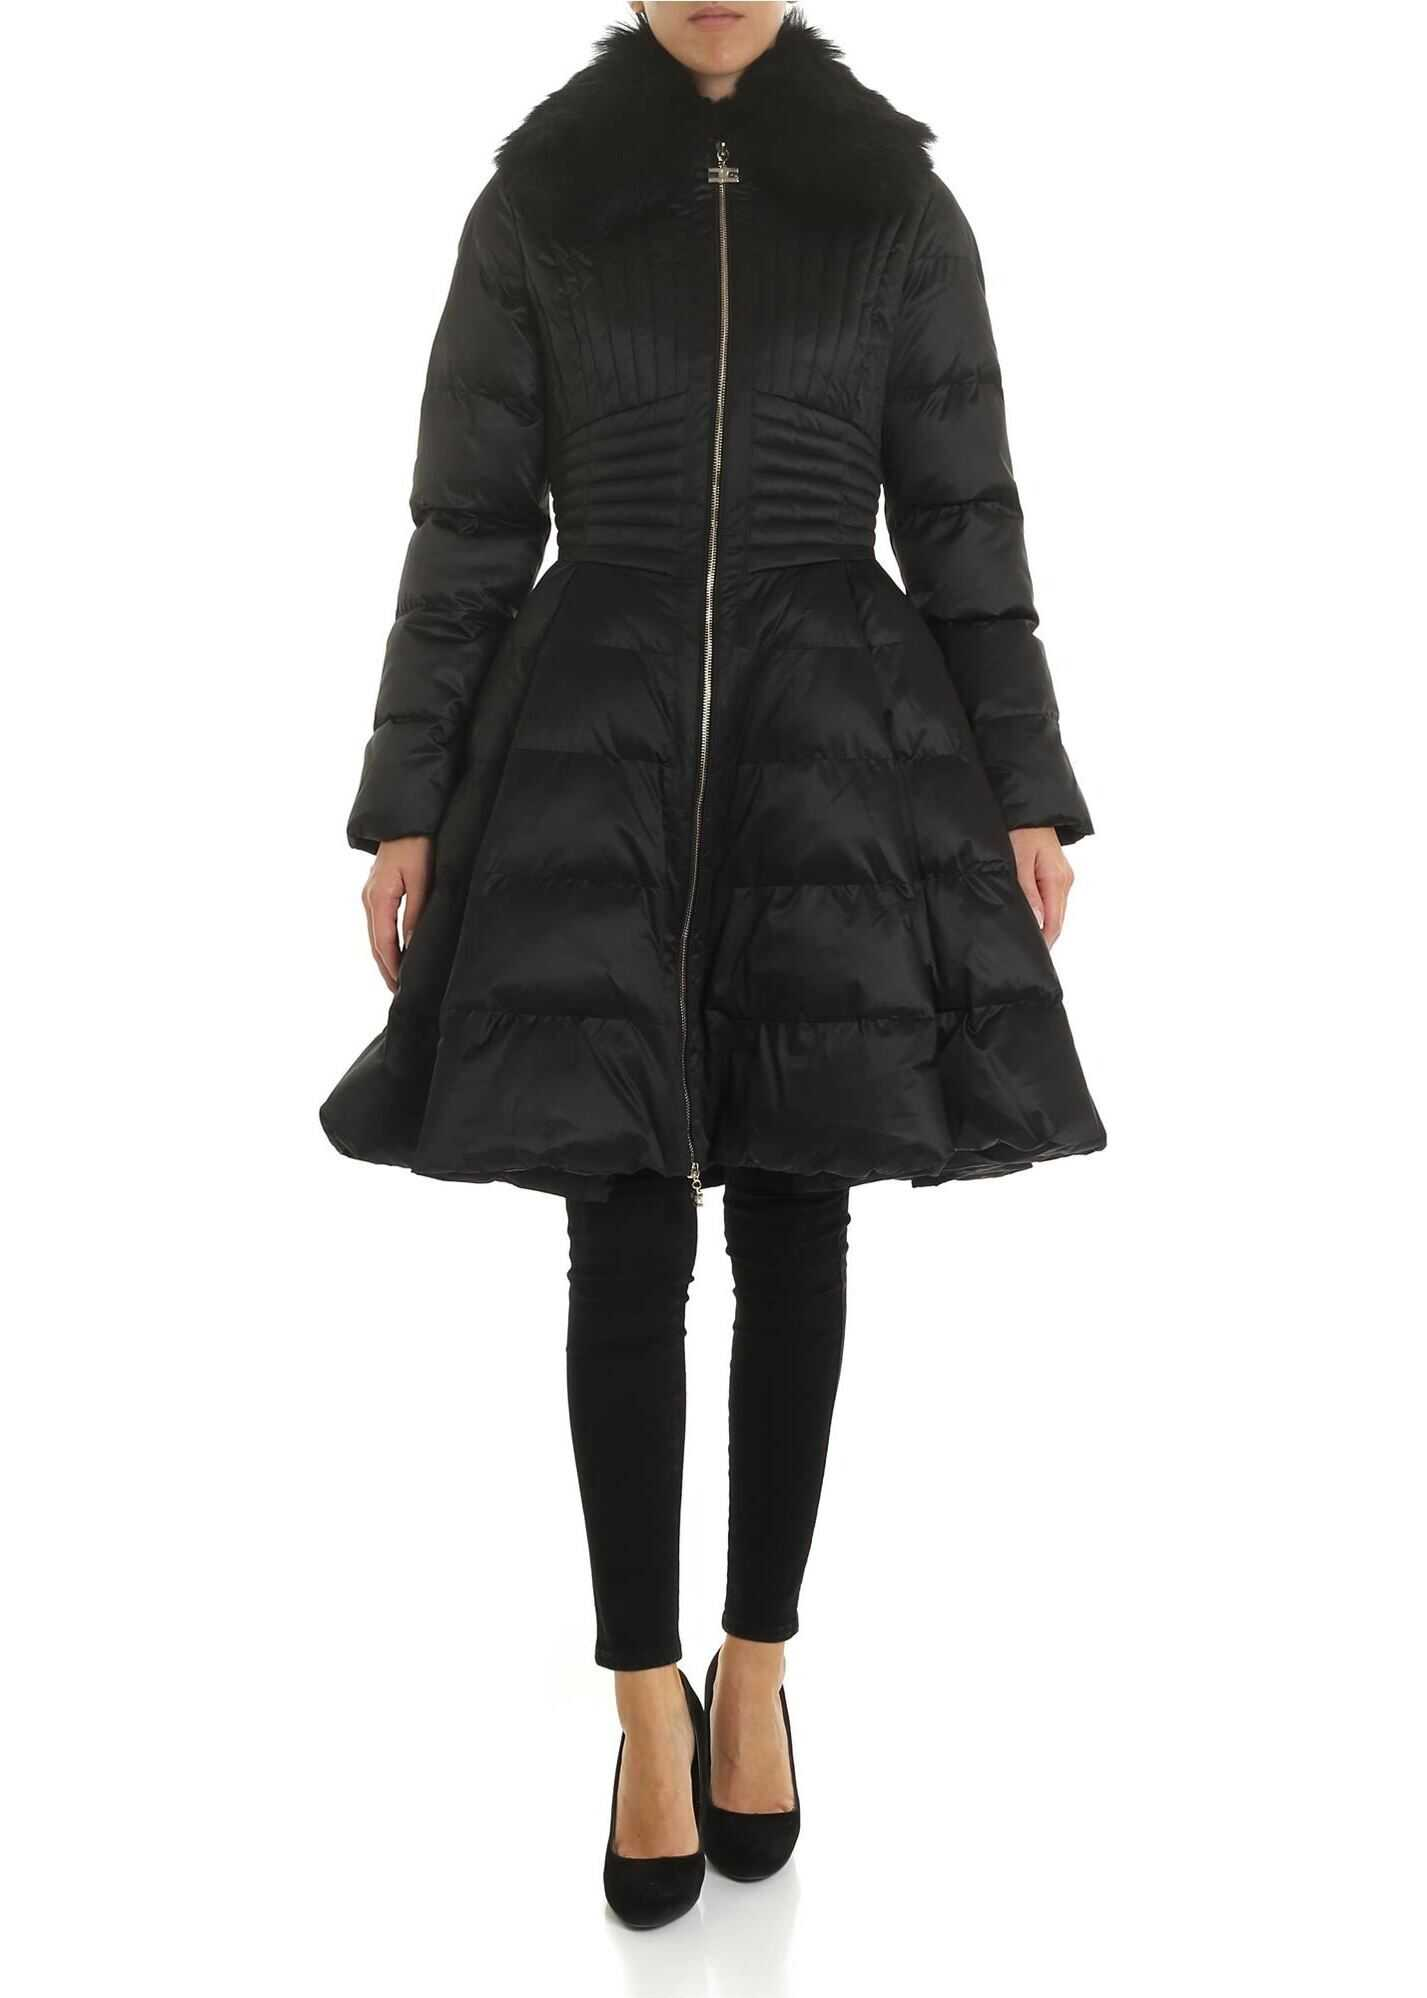 Elisabetta Franchi Black Flared Down Jacket With Eco-Fur Insert Black